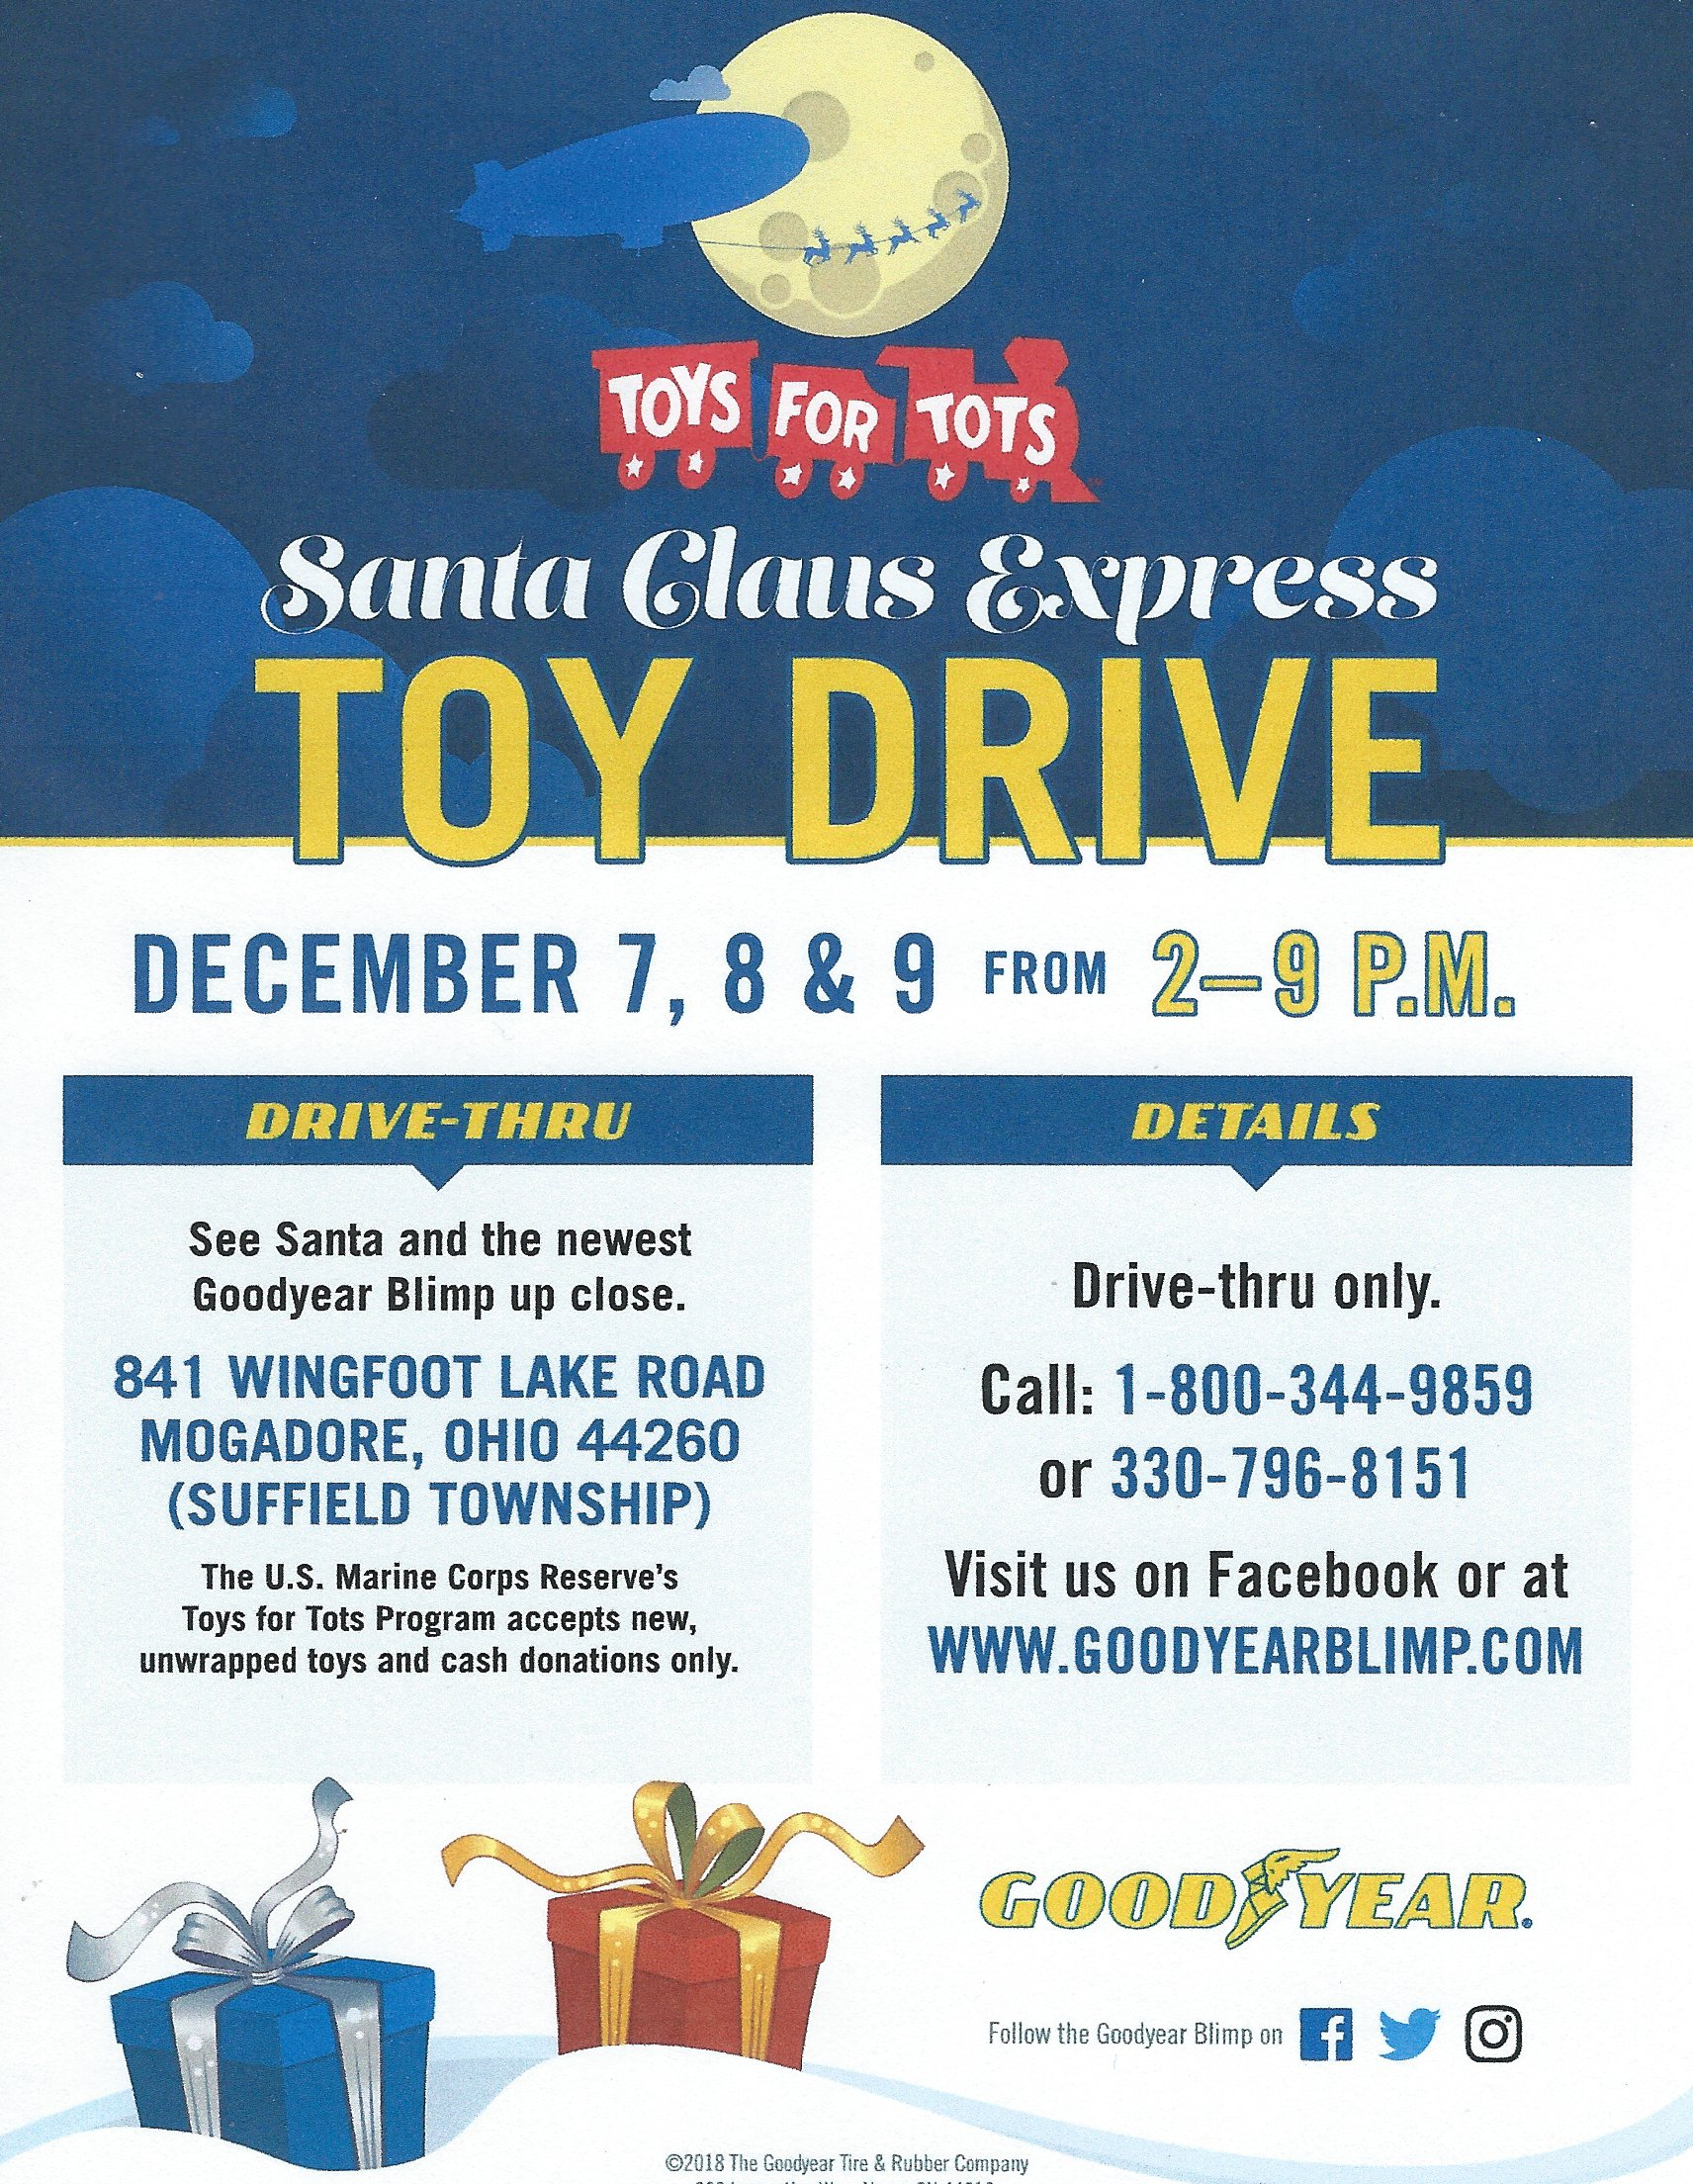 Toys For Tots flyer for 2018